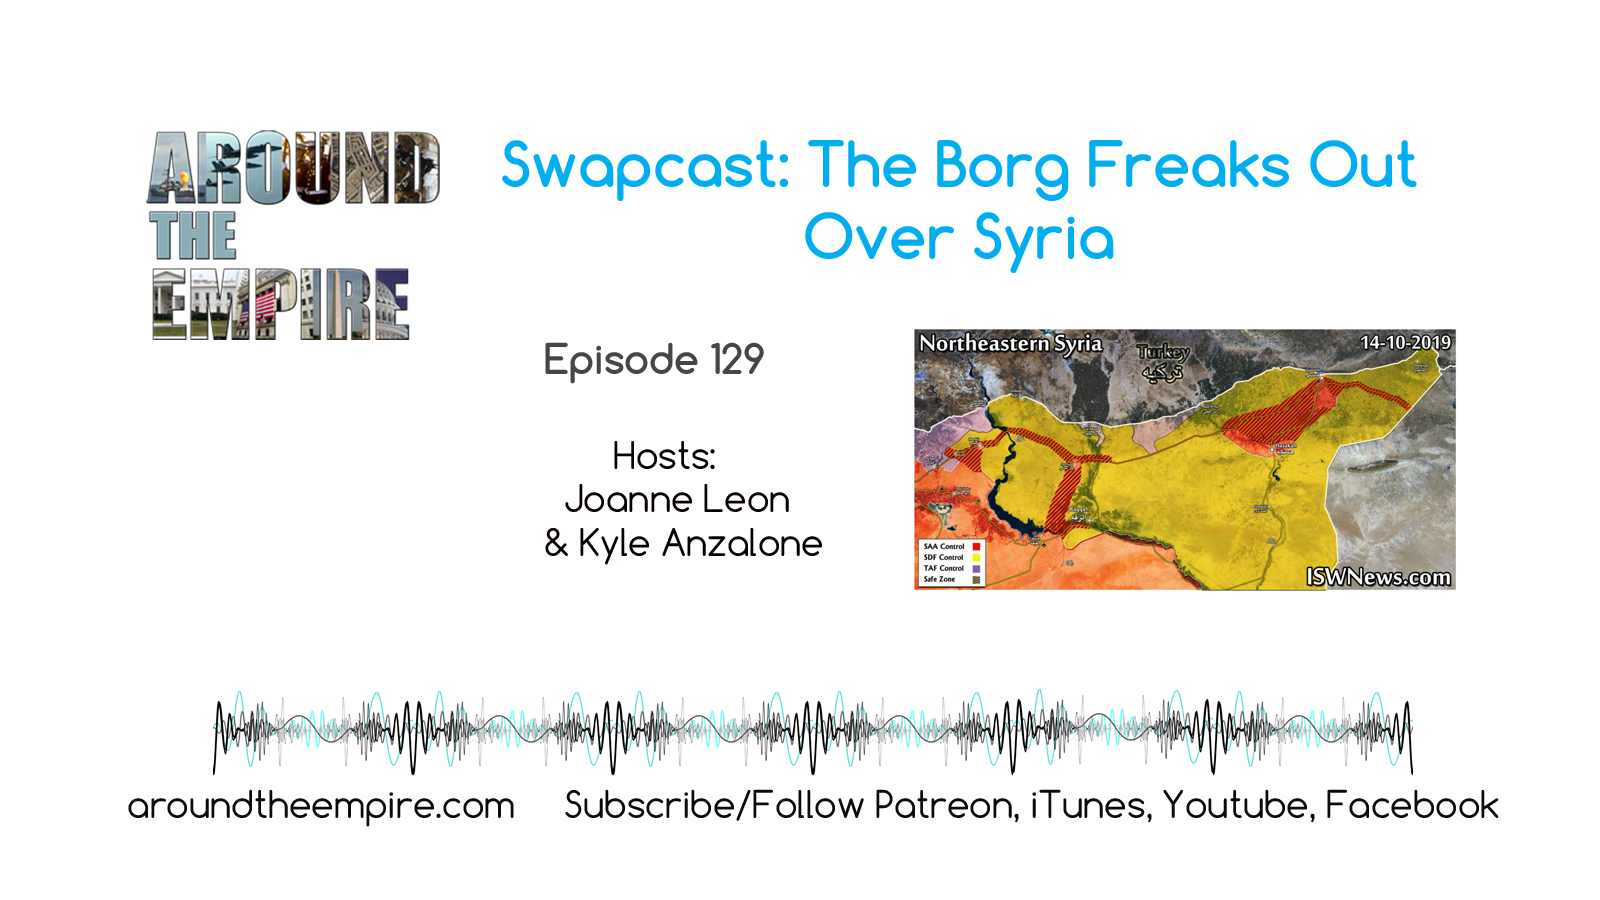 Ep 129 Swapcast Borg Freaks Out Over Syria